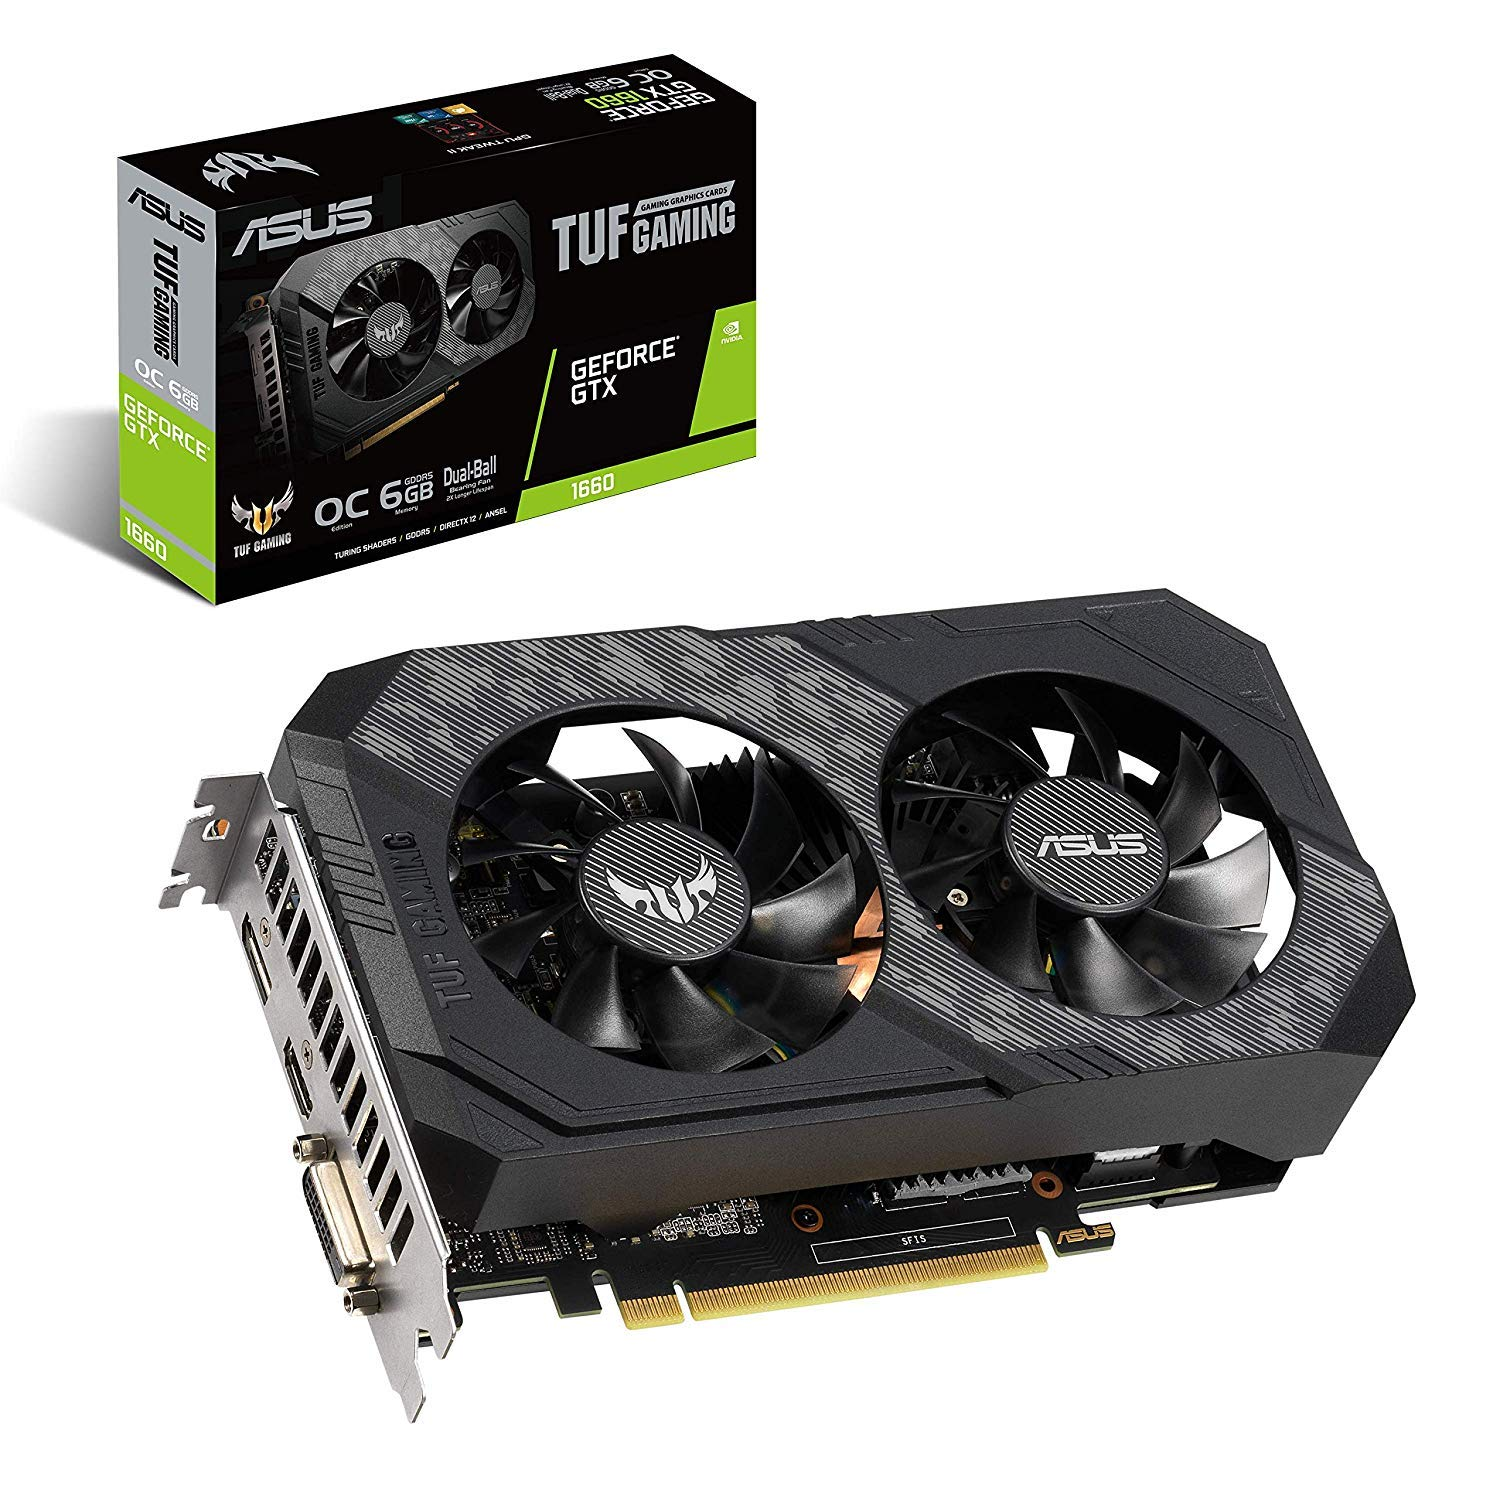 ASUS TUF Gaming GeForce GTX 1660 Overclocked 6GB Dual-Fan Edition HDMI DP DVI Gaming Graphics Card (TUF-GTX1660-O6G-Gaming)